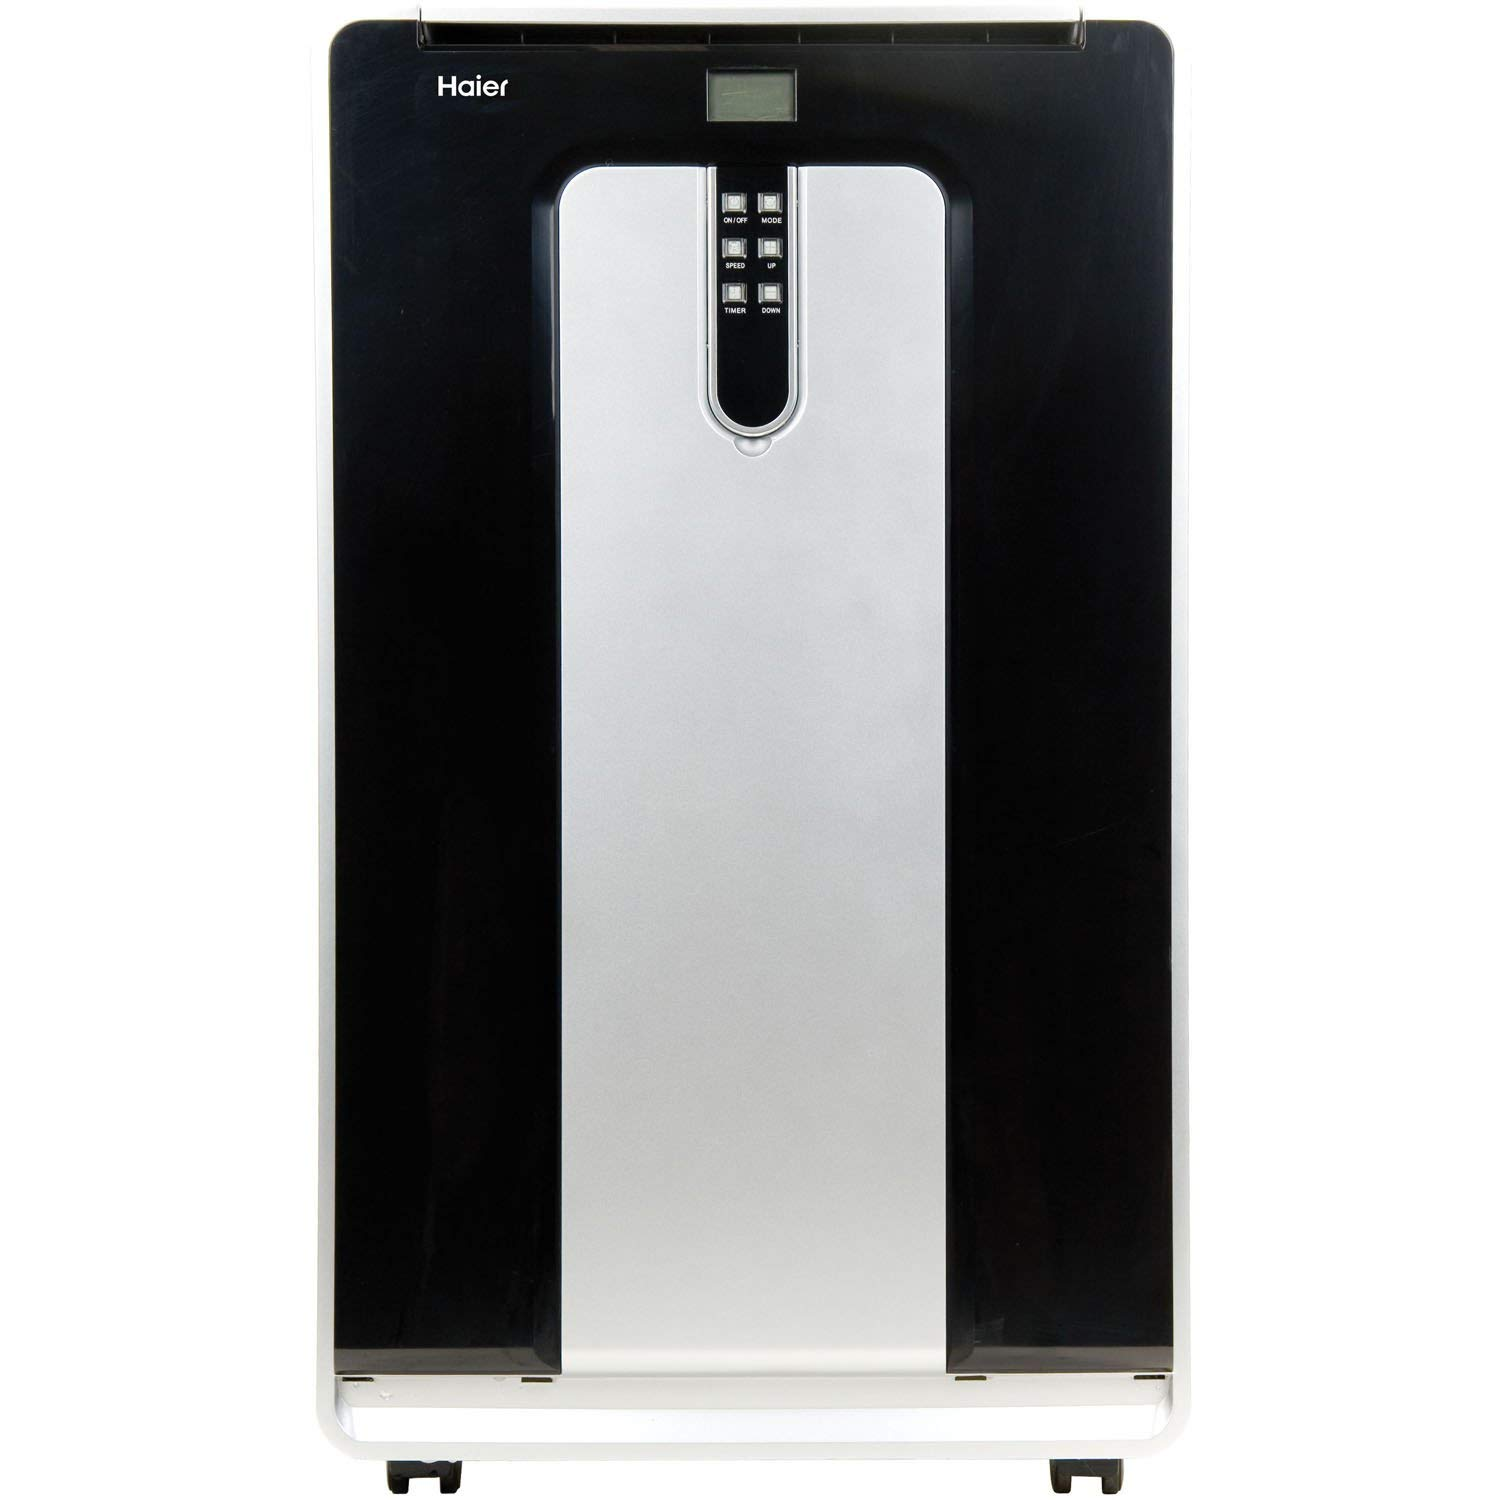 Haier HPND14XHT 14, 000 BTU 115V Dual-Hose Portable Air Conditioner with 10, 000 BTU Heat Mode